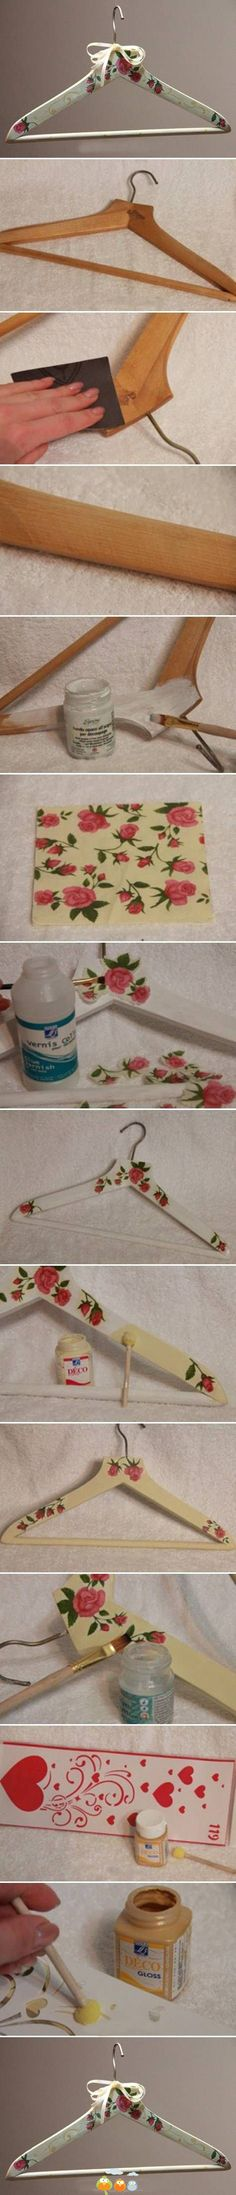 decoupage hanger idea